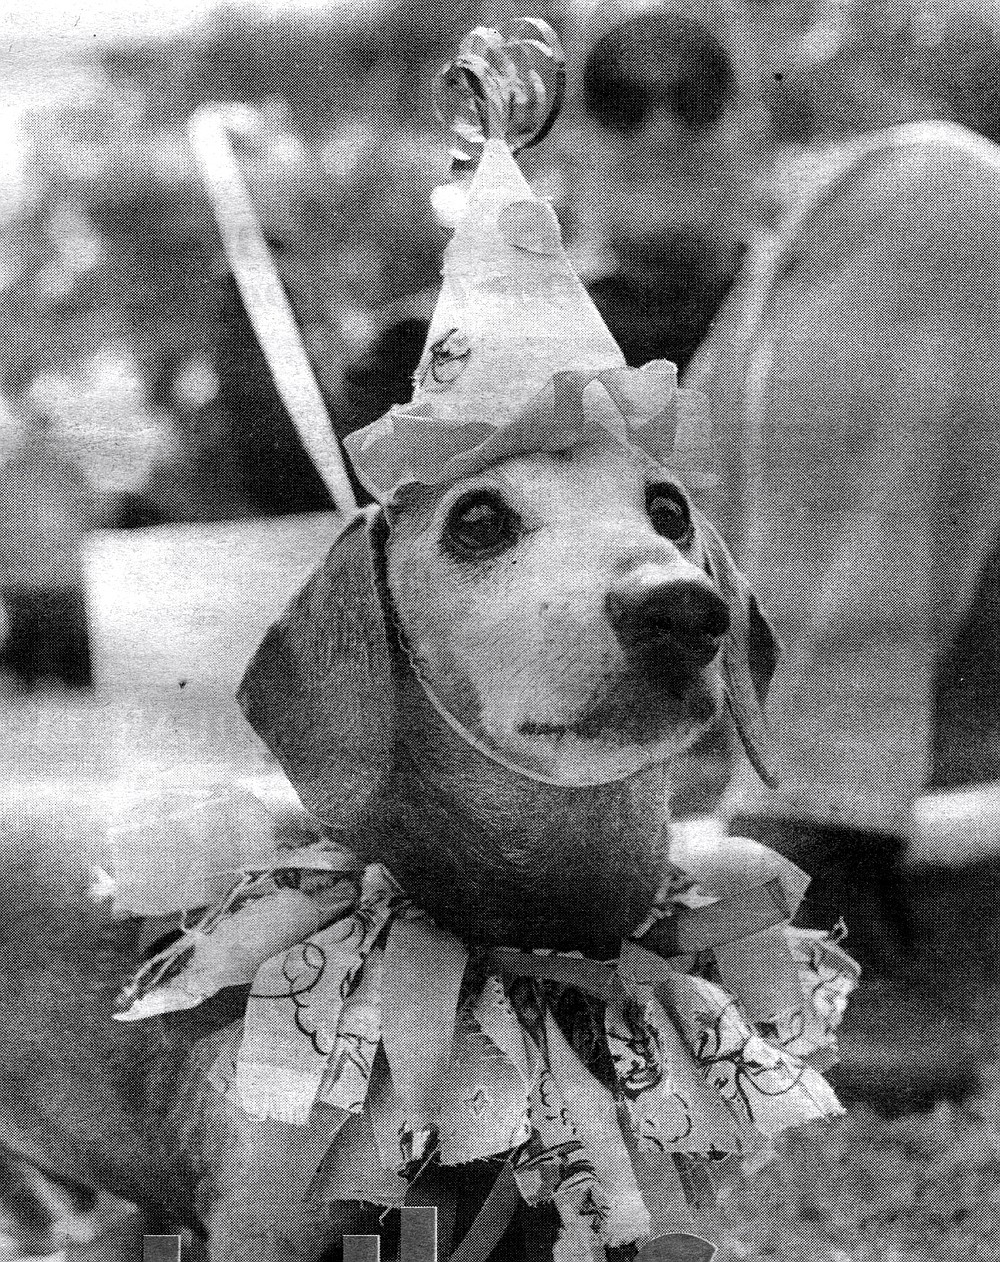 Entry at Hallo-Weiner Dachshund Picnic, October 26. Newsday gossip columnist Liz Smith's dogs are dressed up like clowns with the face ruff.